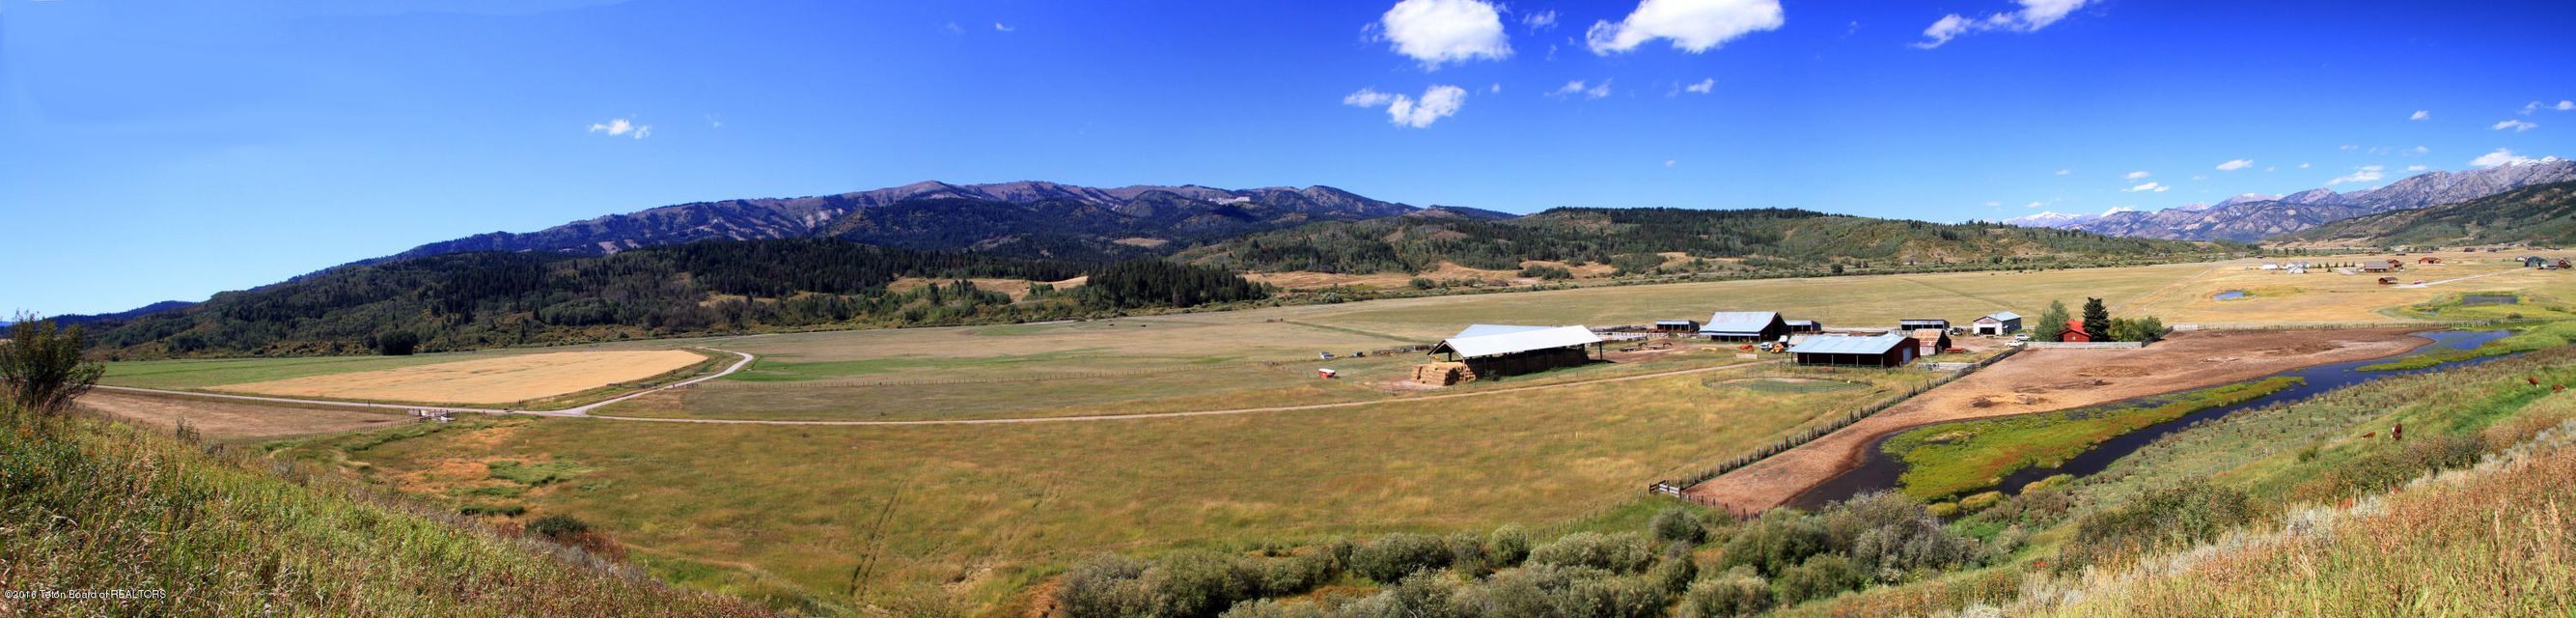 Additional photo for property listing at RISING TROUT RANCH Alpine, WY RISING TROUT RANCH Alpine, Wyoming,83128 Estados Unidos